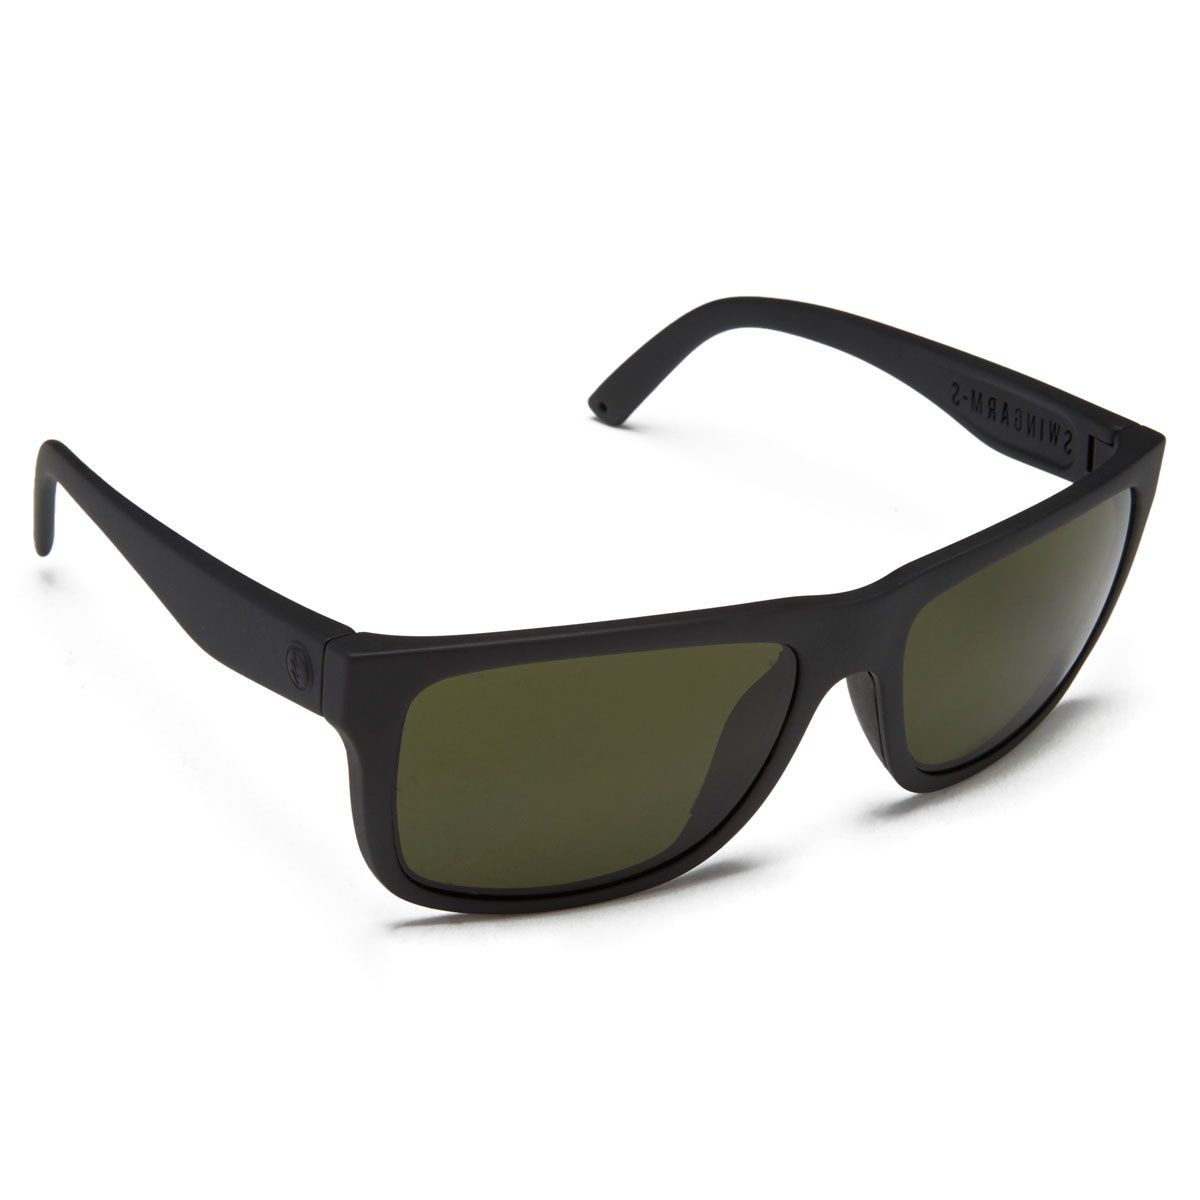 283f5bb217 Electric Swingarm S Sunglasses Matte Black Ohm Grey